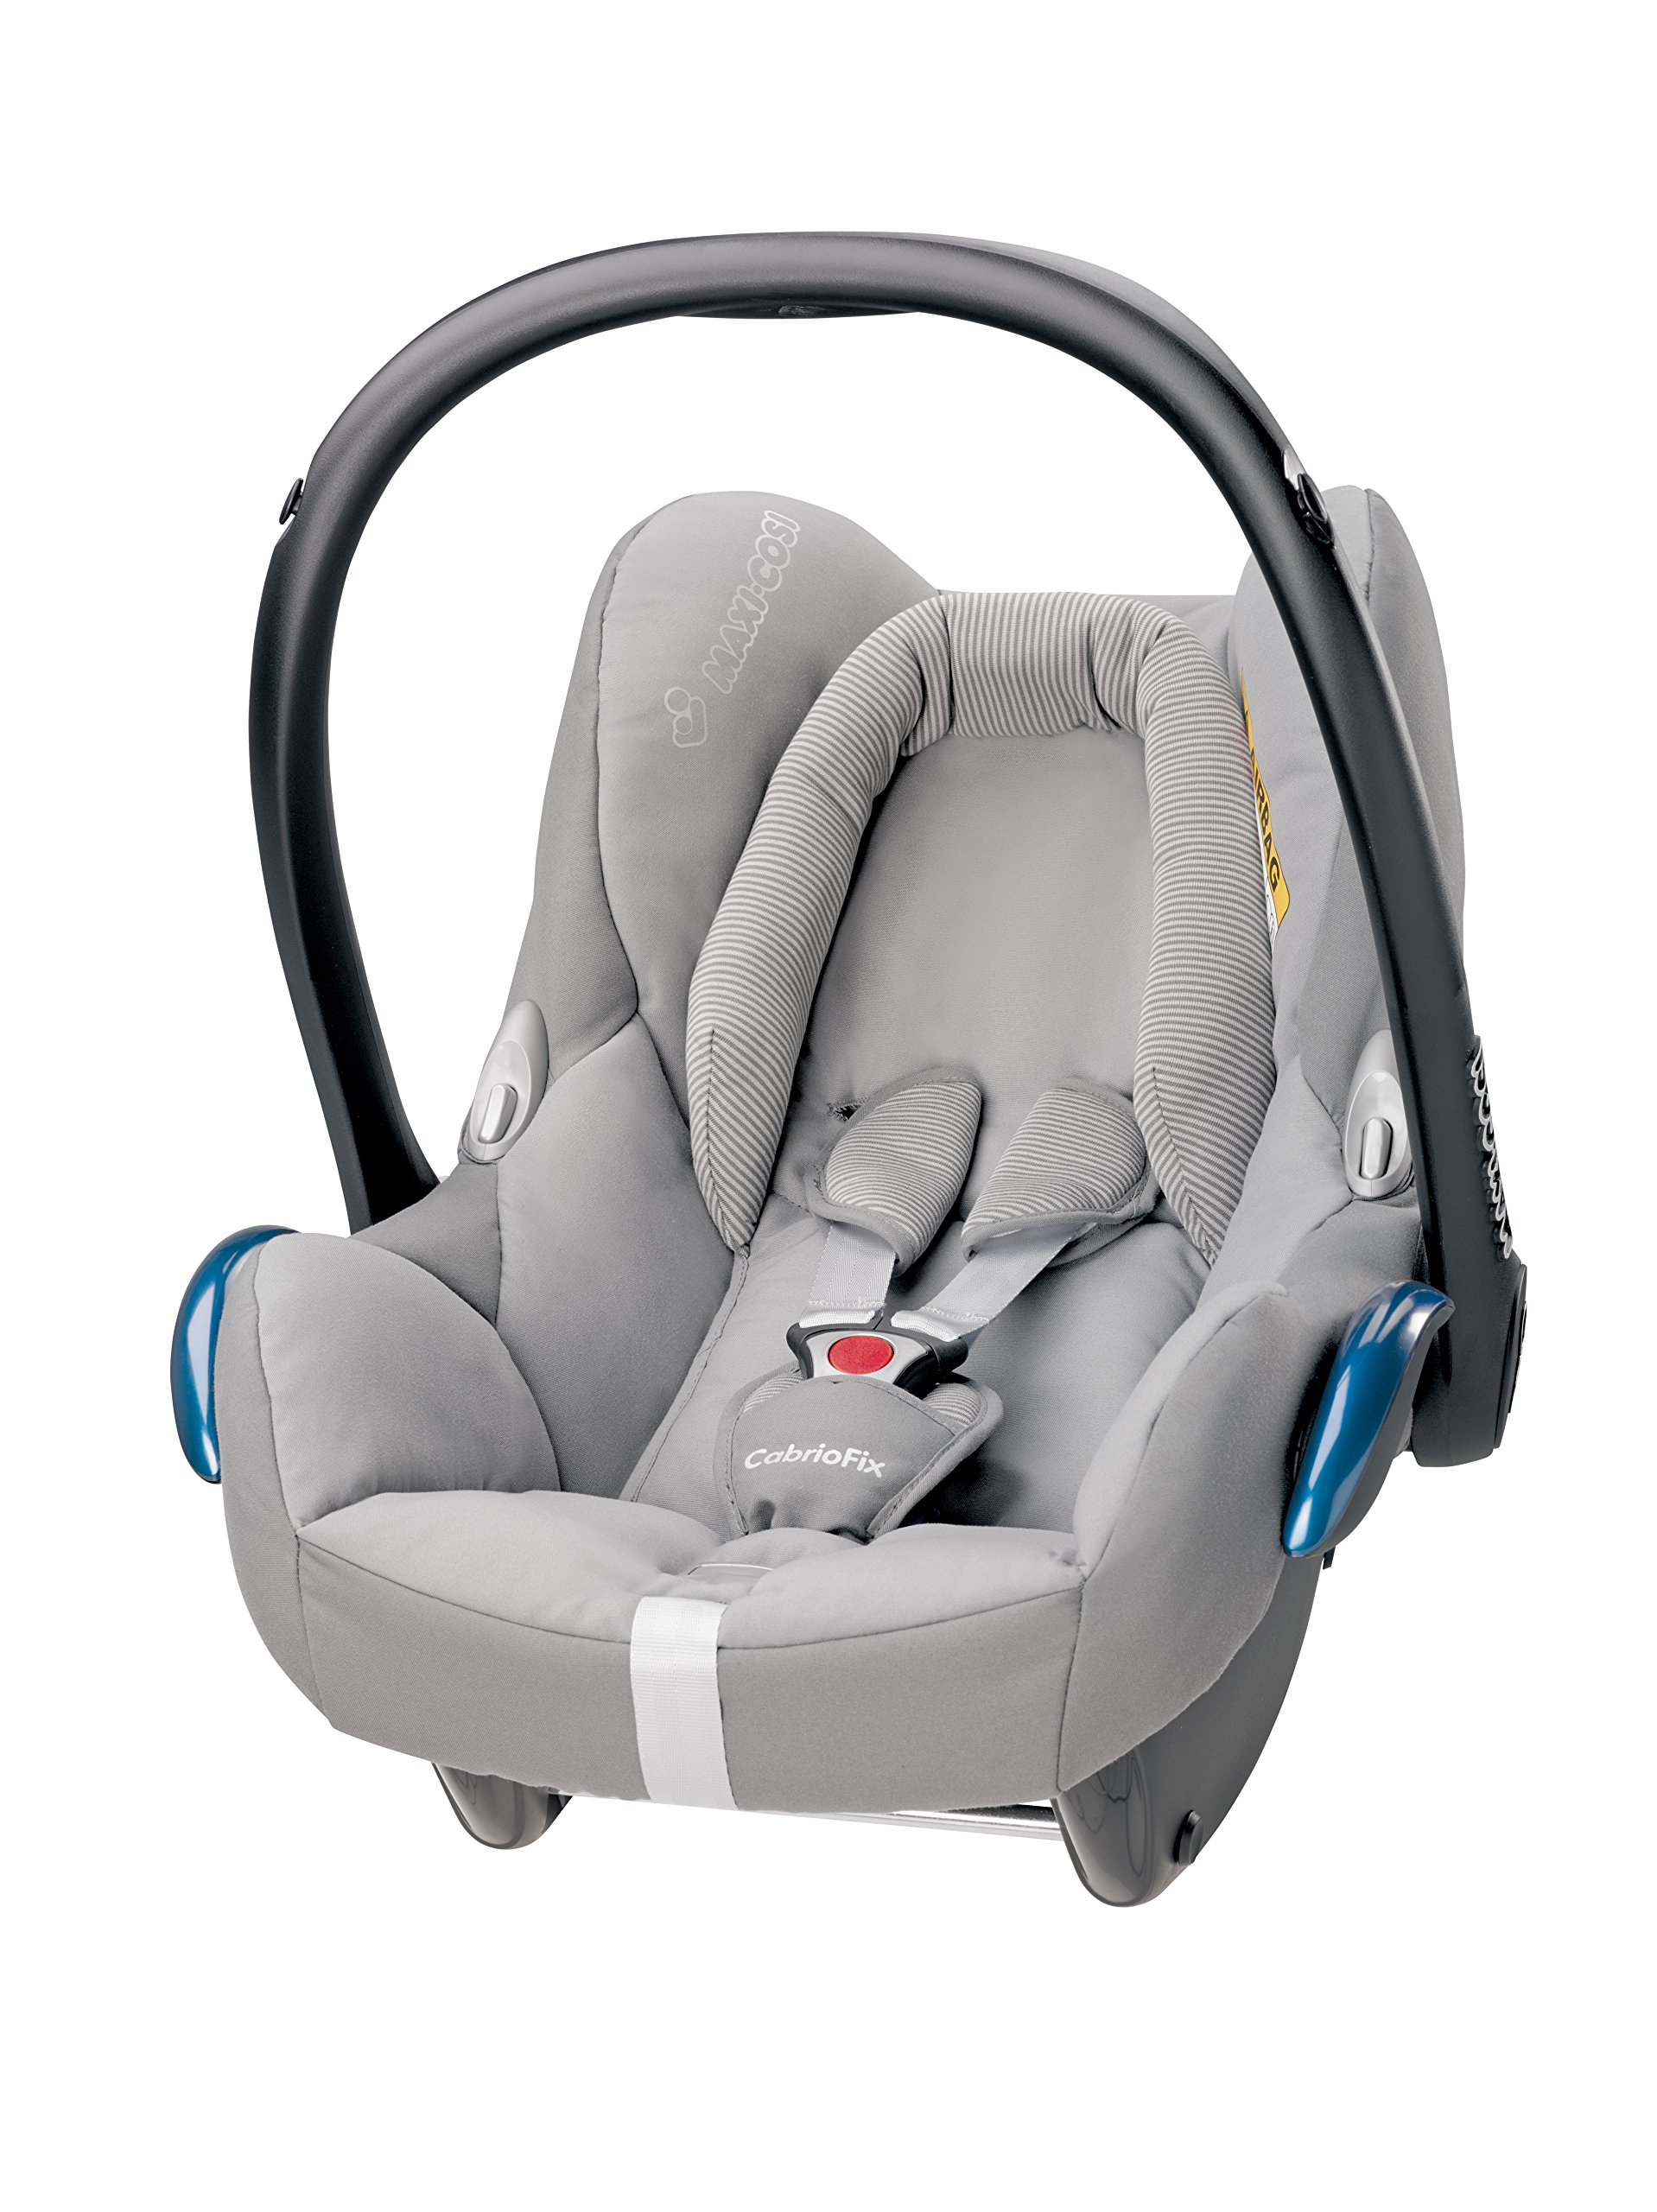 Maxi-Cosi CabrioFix Baby Car Seat Group 0+, ISOFIX, 0-12 Months, 0-13 kg, Concrete Grey Maxi-Cosi Suitable from birth to 13 kg (approximately 12 months) Compatible with Maxi-Cosi and Quinny pushchairs to form a travel system Easy installation in combination with Maxi-Cosi FamilyFix Base, EasyFix Base or a three-point seat belt 1